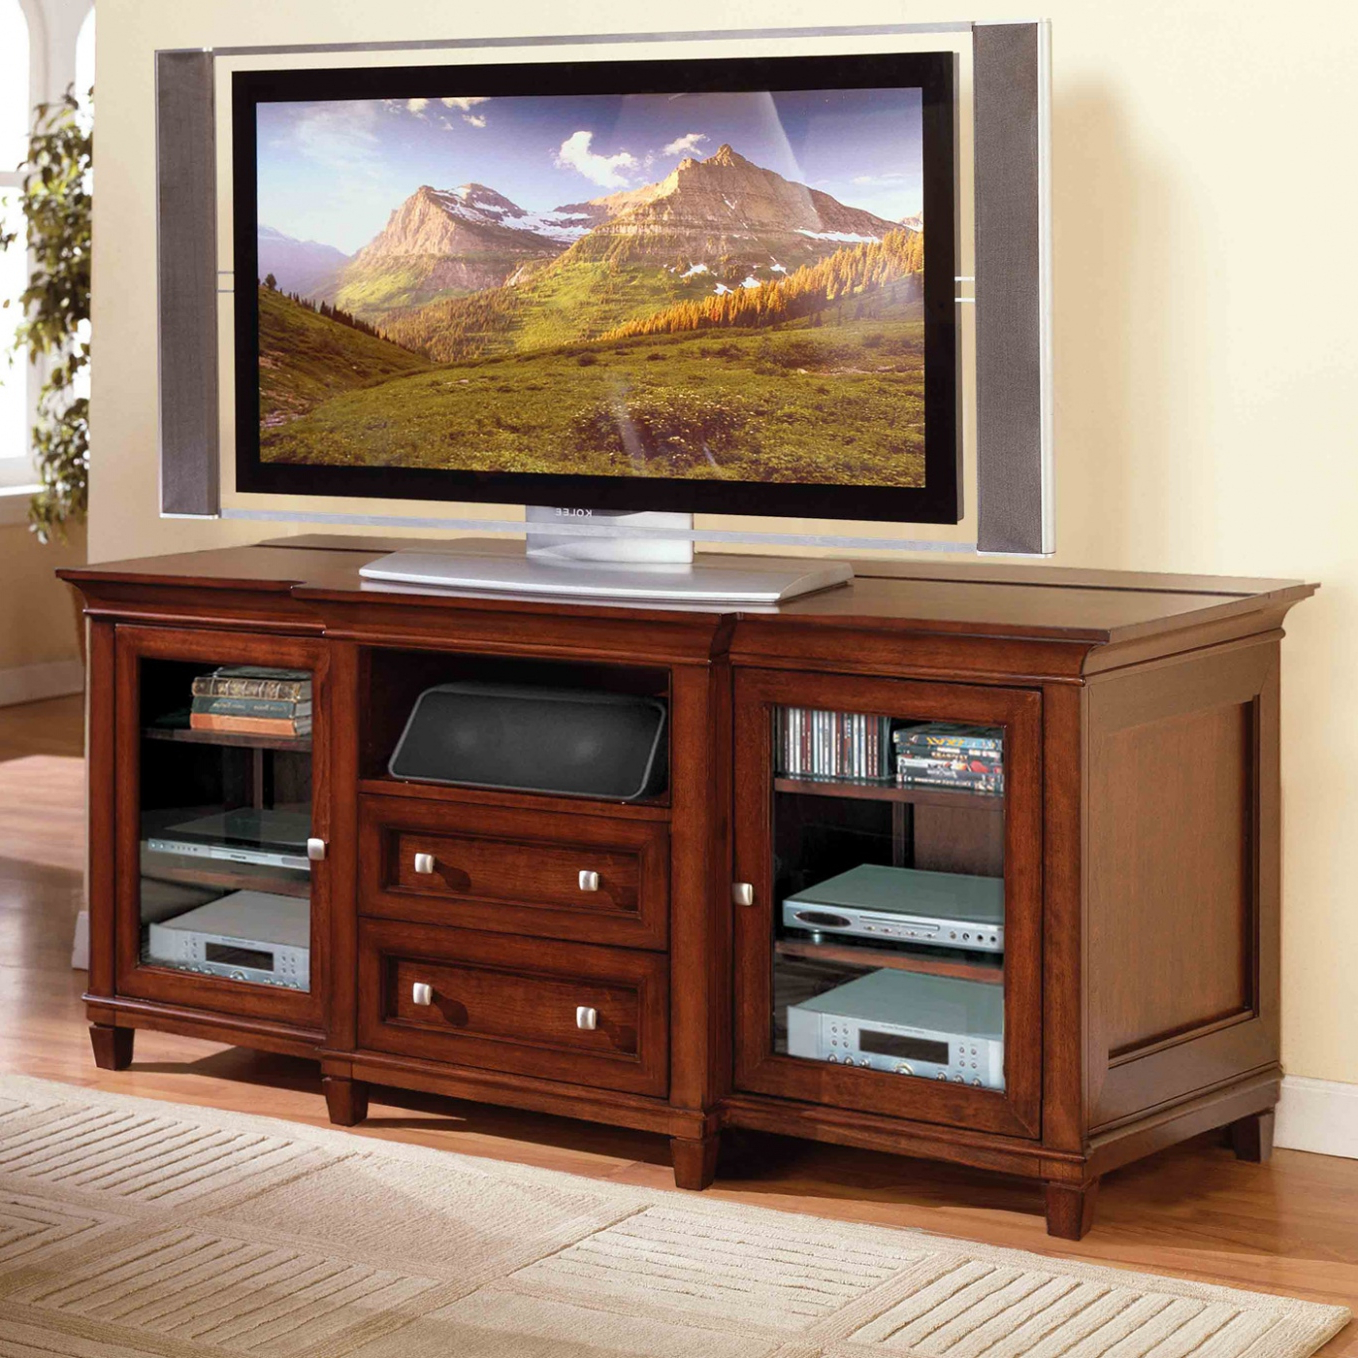 Most Recent Brown Mahogany Wood Flat Screen Tv Stand With Storage — Rabbssteak Pertaining To Tall Tv Stands For Flat Screen (View 12 of 20)